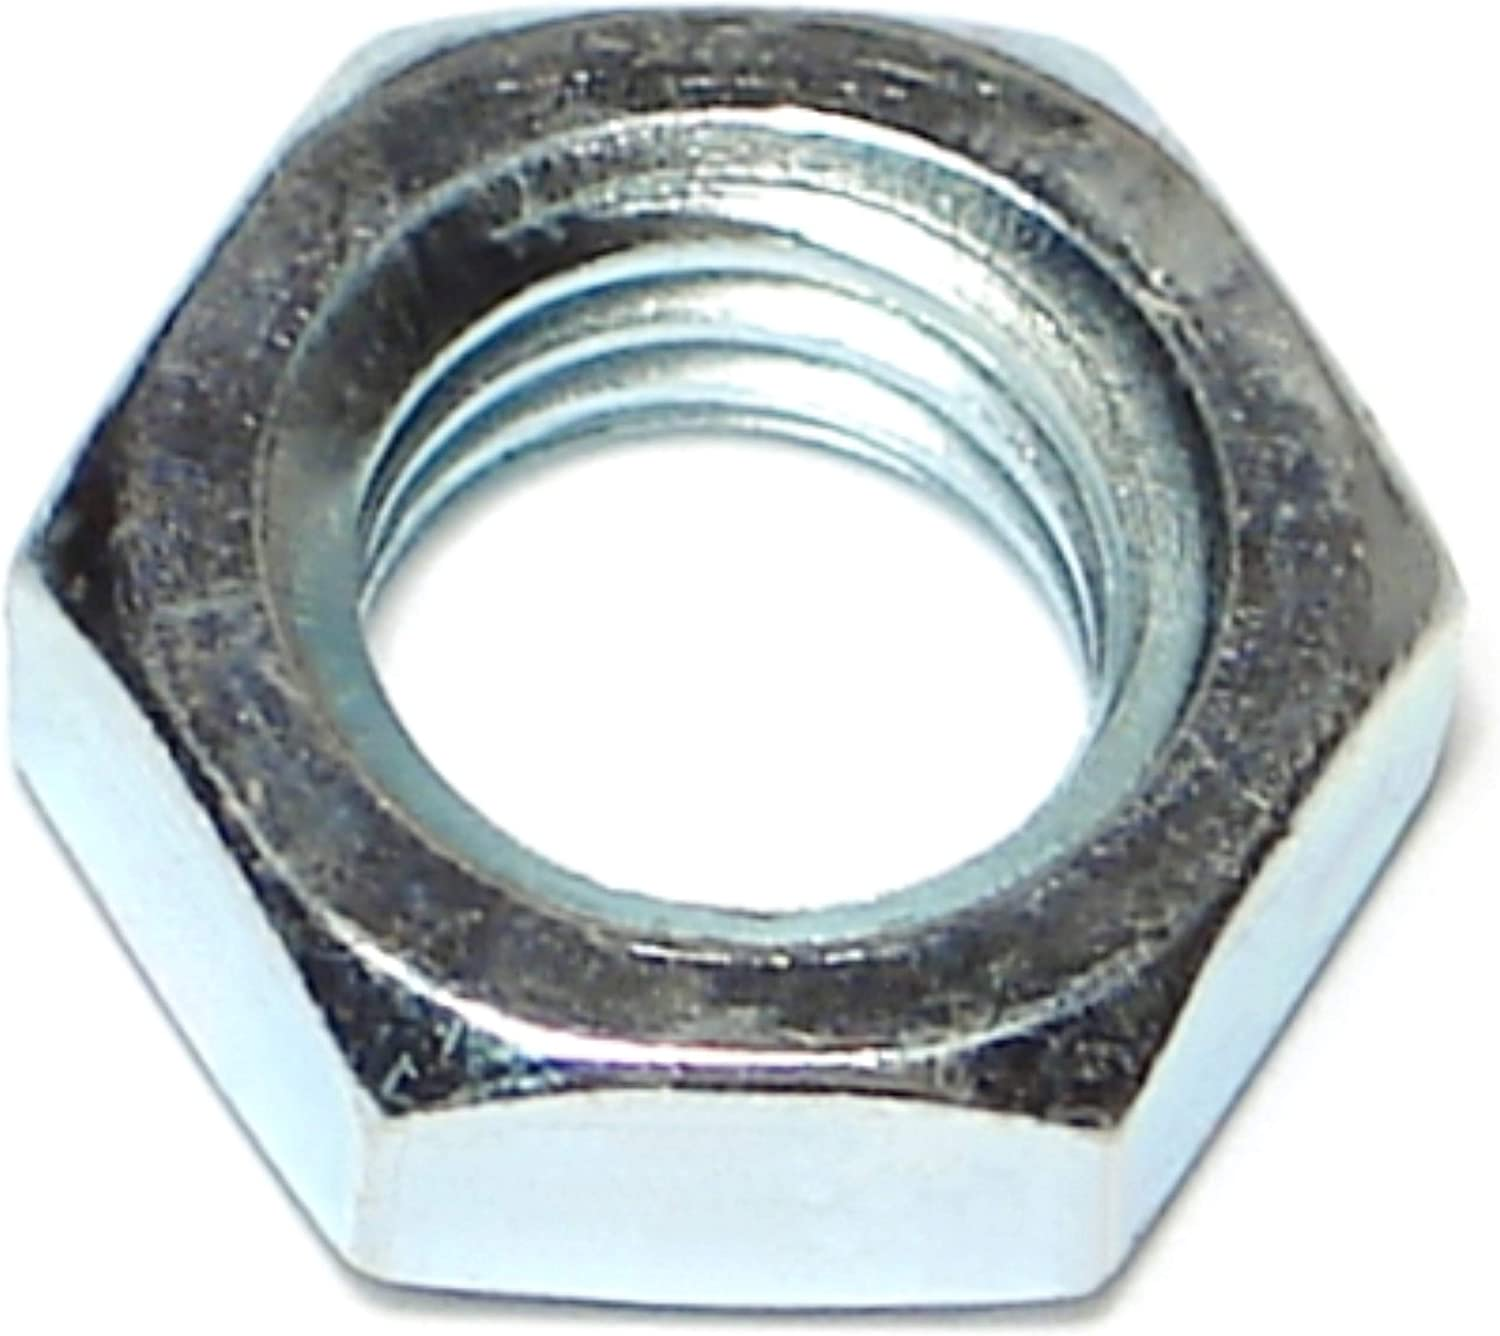 Piece-25 Hard-to-Find Fastener 014973259389 Coarse Hex Jam Nuts 5//8-11